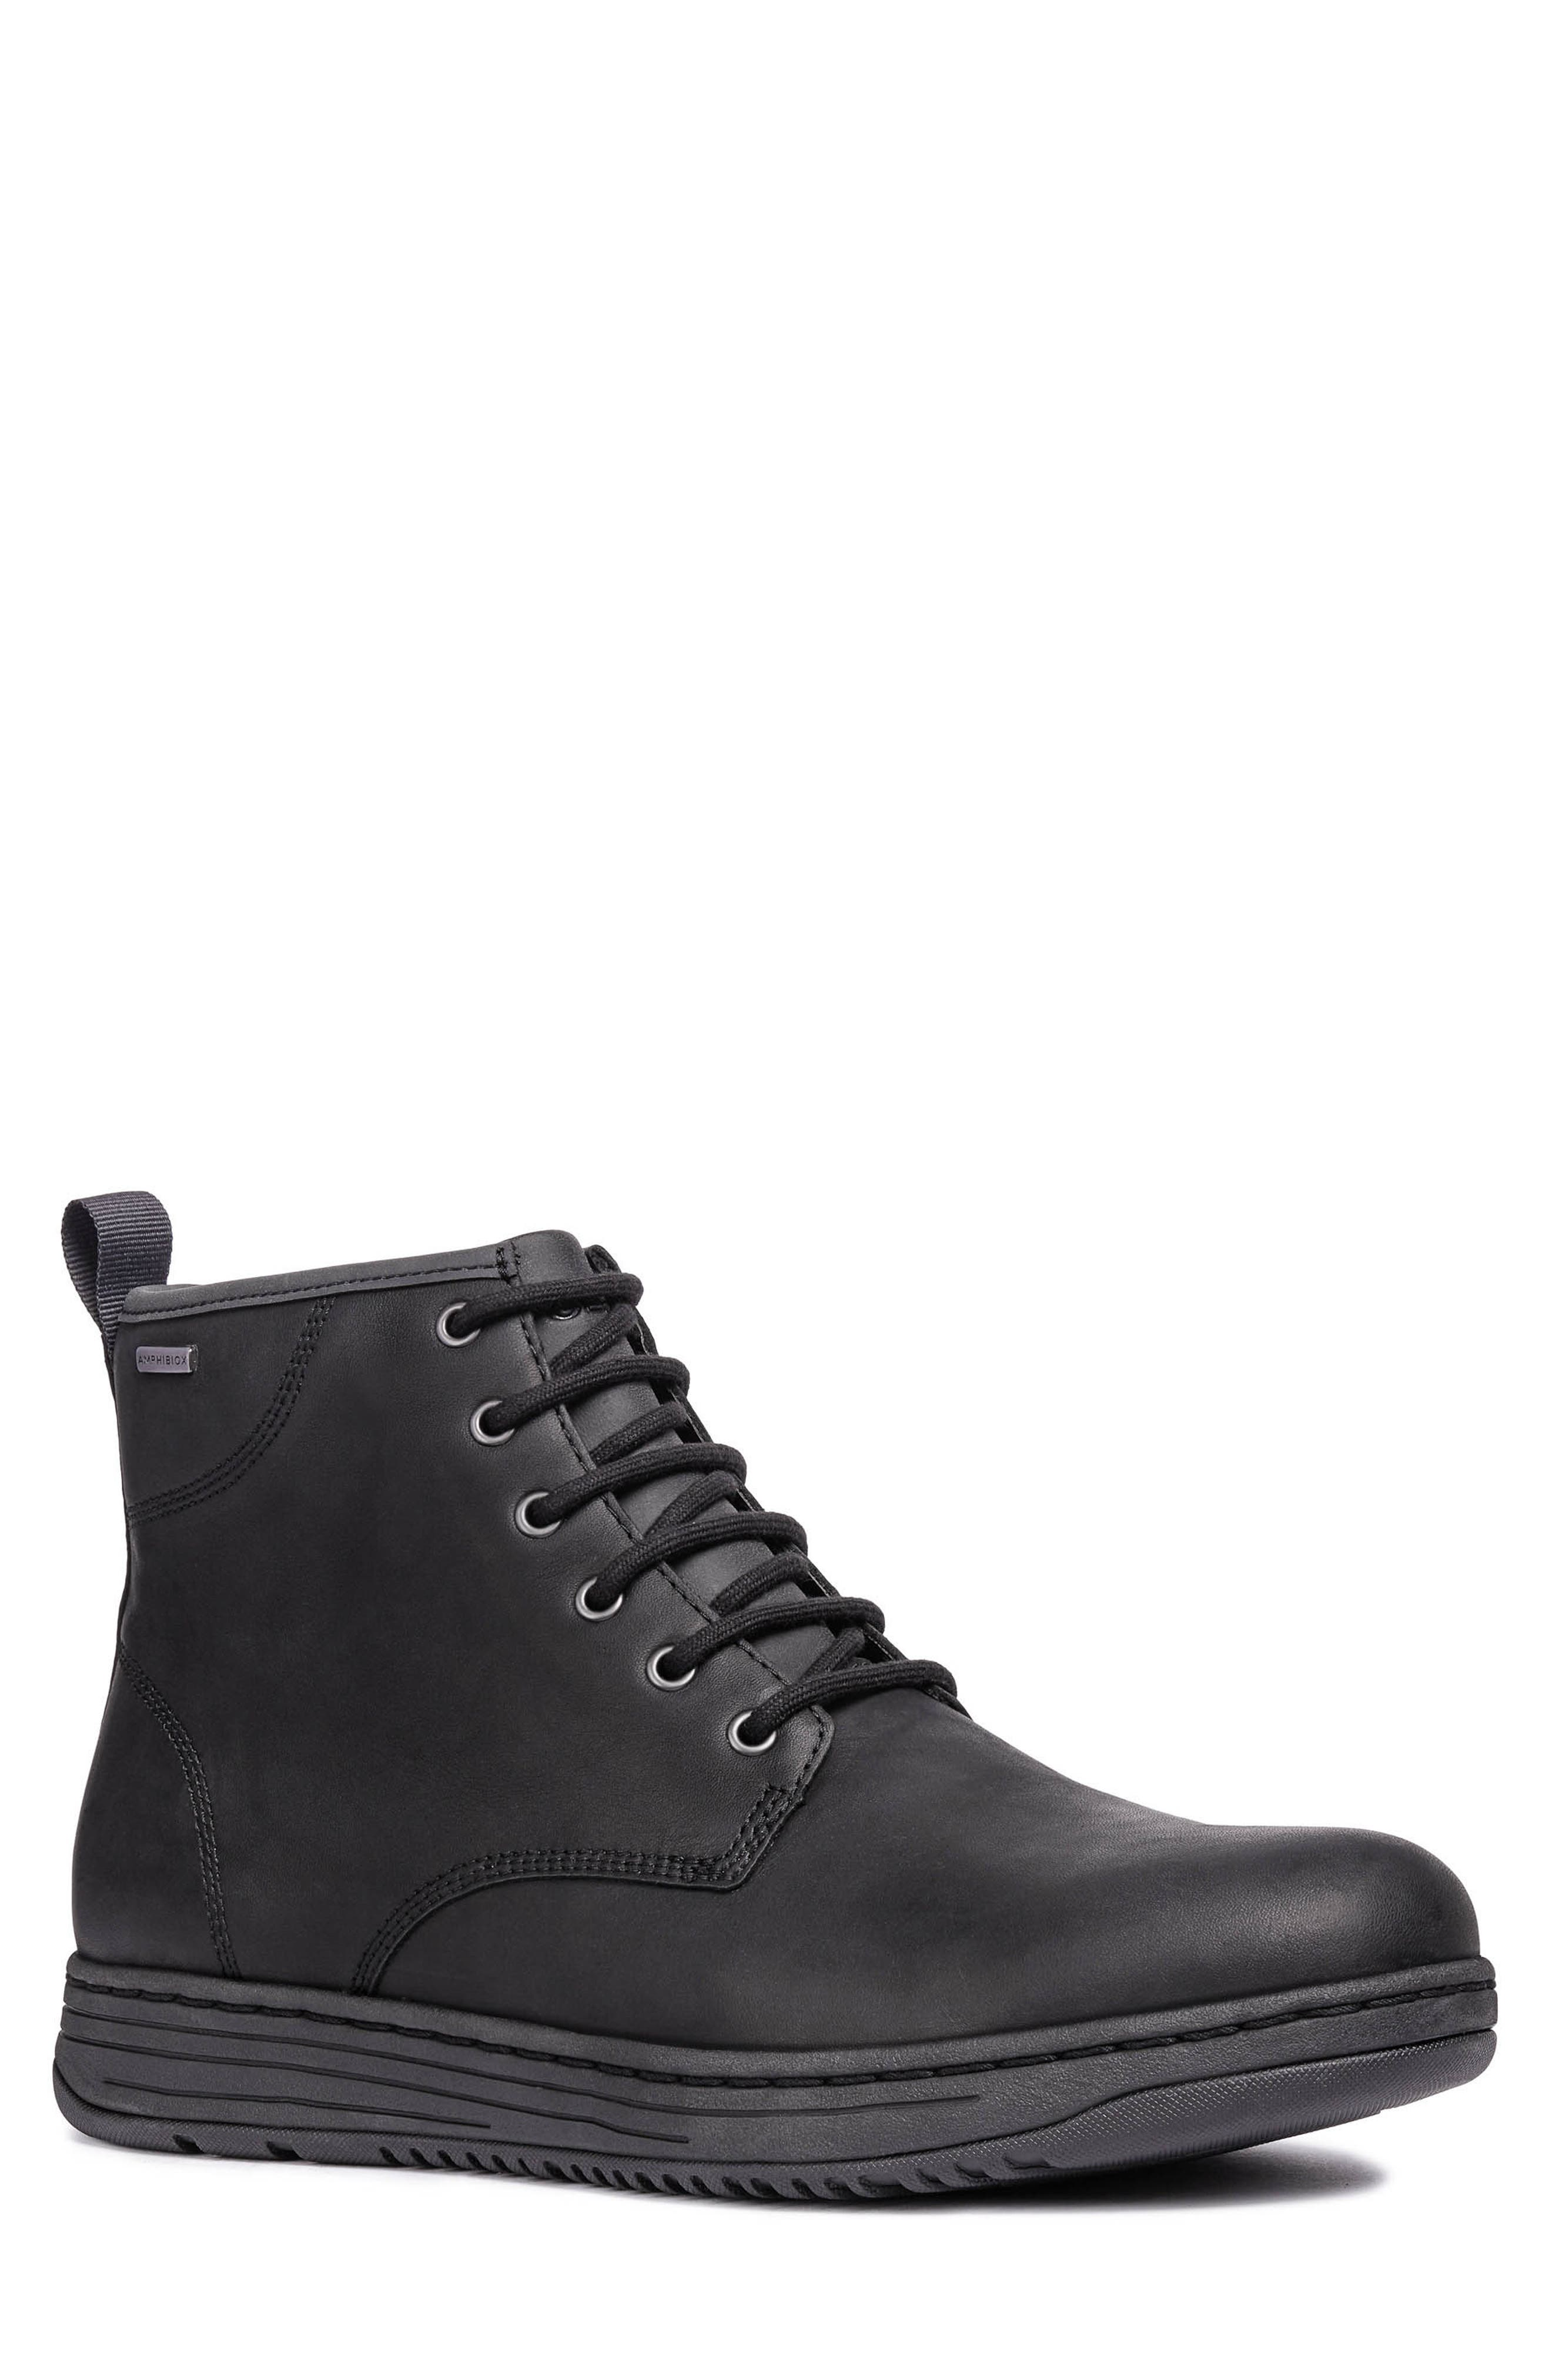 Abroad ABX 2 Tall Lace-Up Boot,                         Main,                         color, BLACK